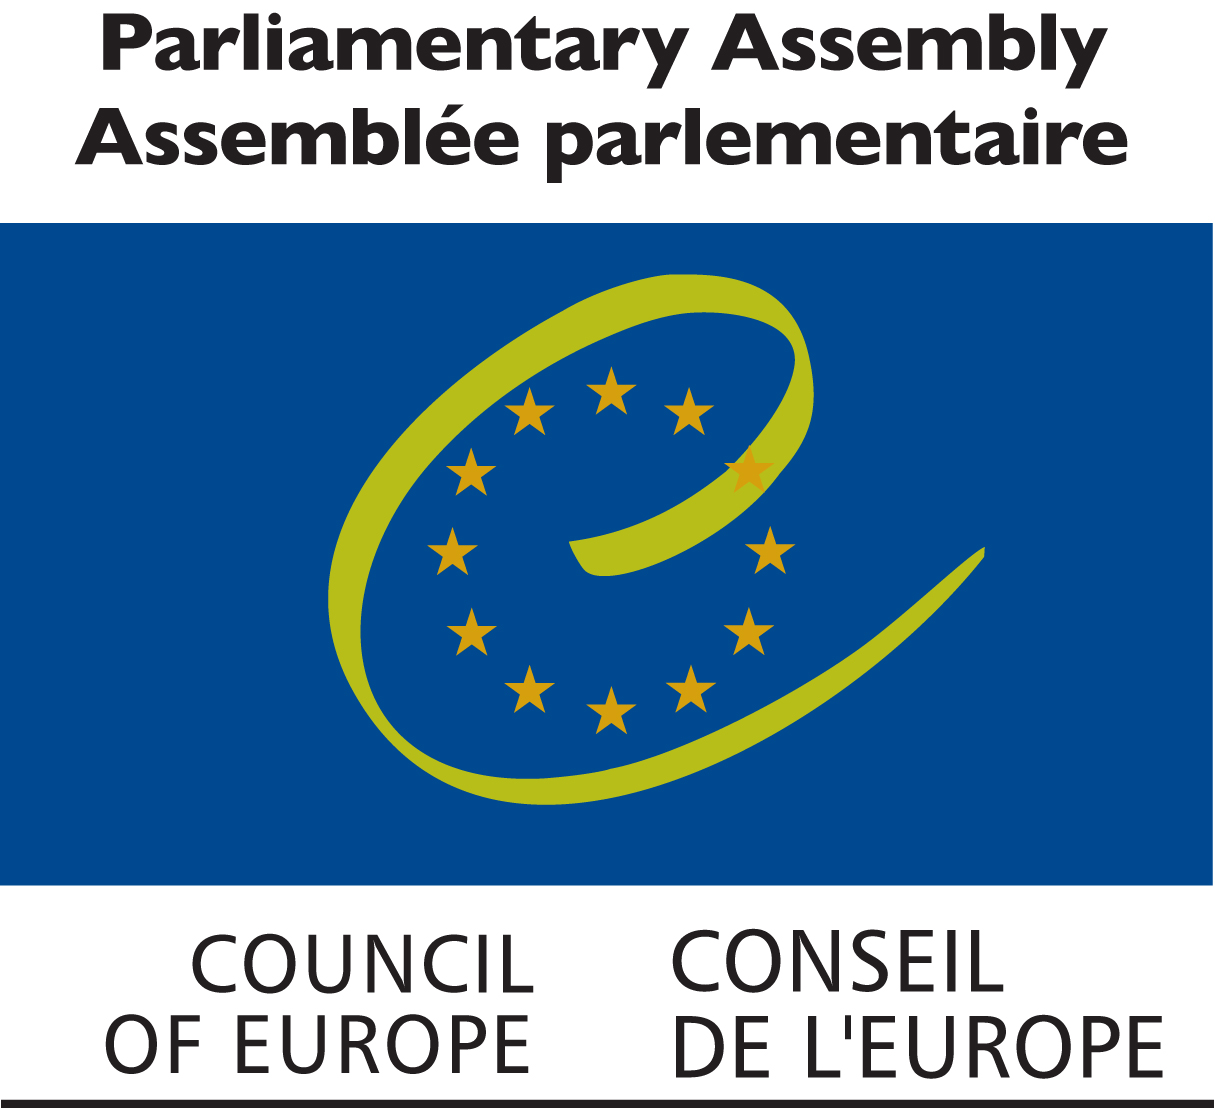 Logo of the Parlamentary assembly Council of Europe